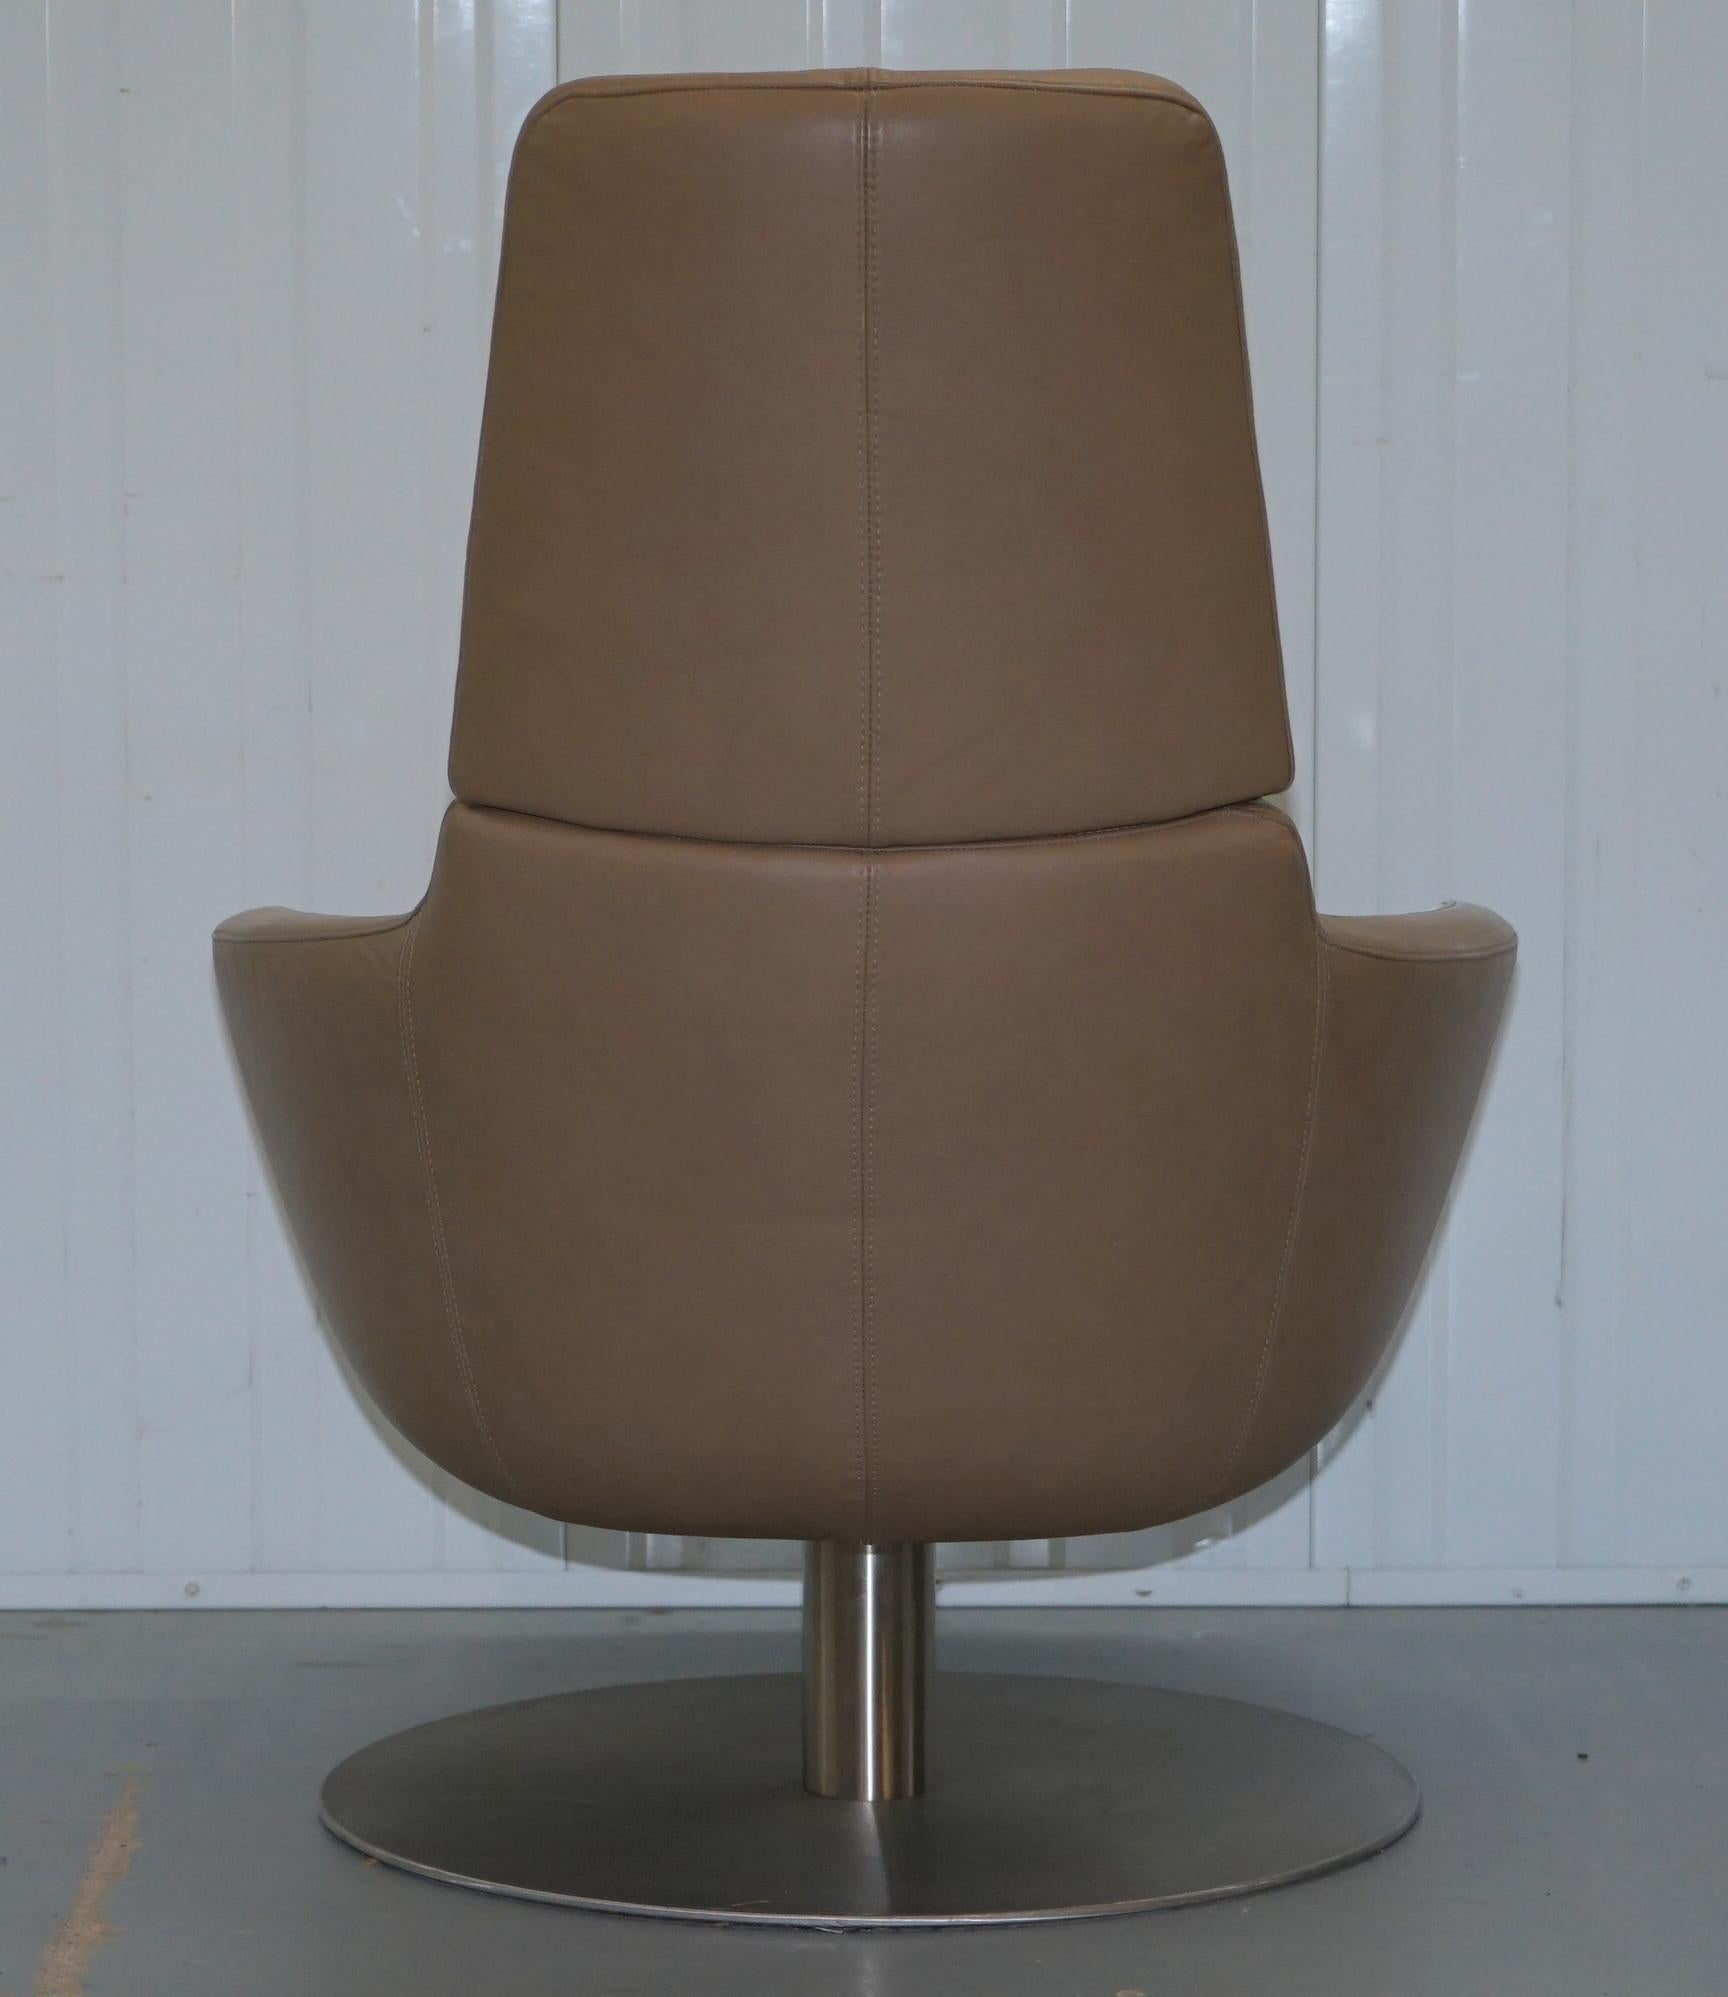 natuzzi swivel chair teal bungee rare made in italy brend armchair aged brown leather for sale 7